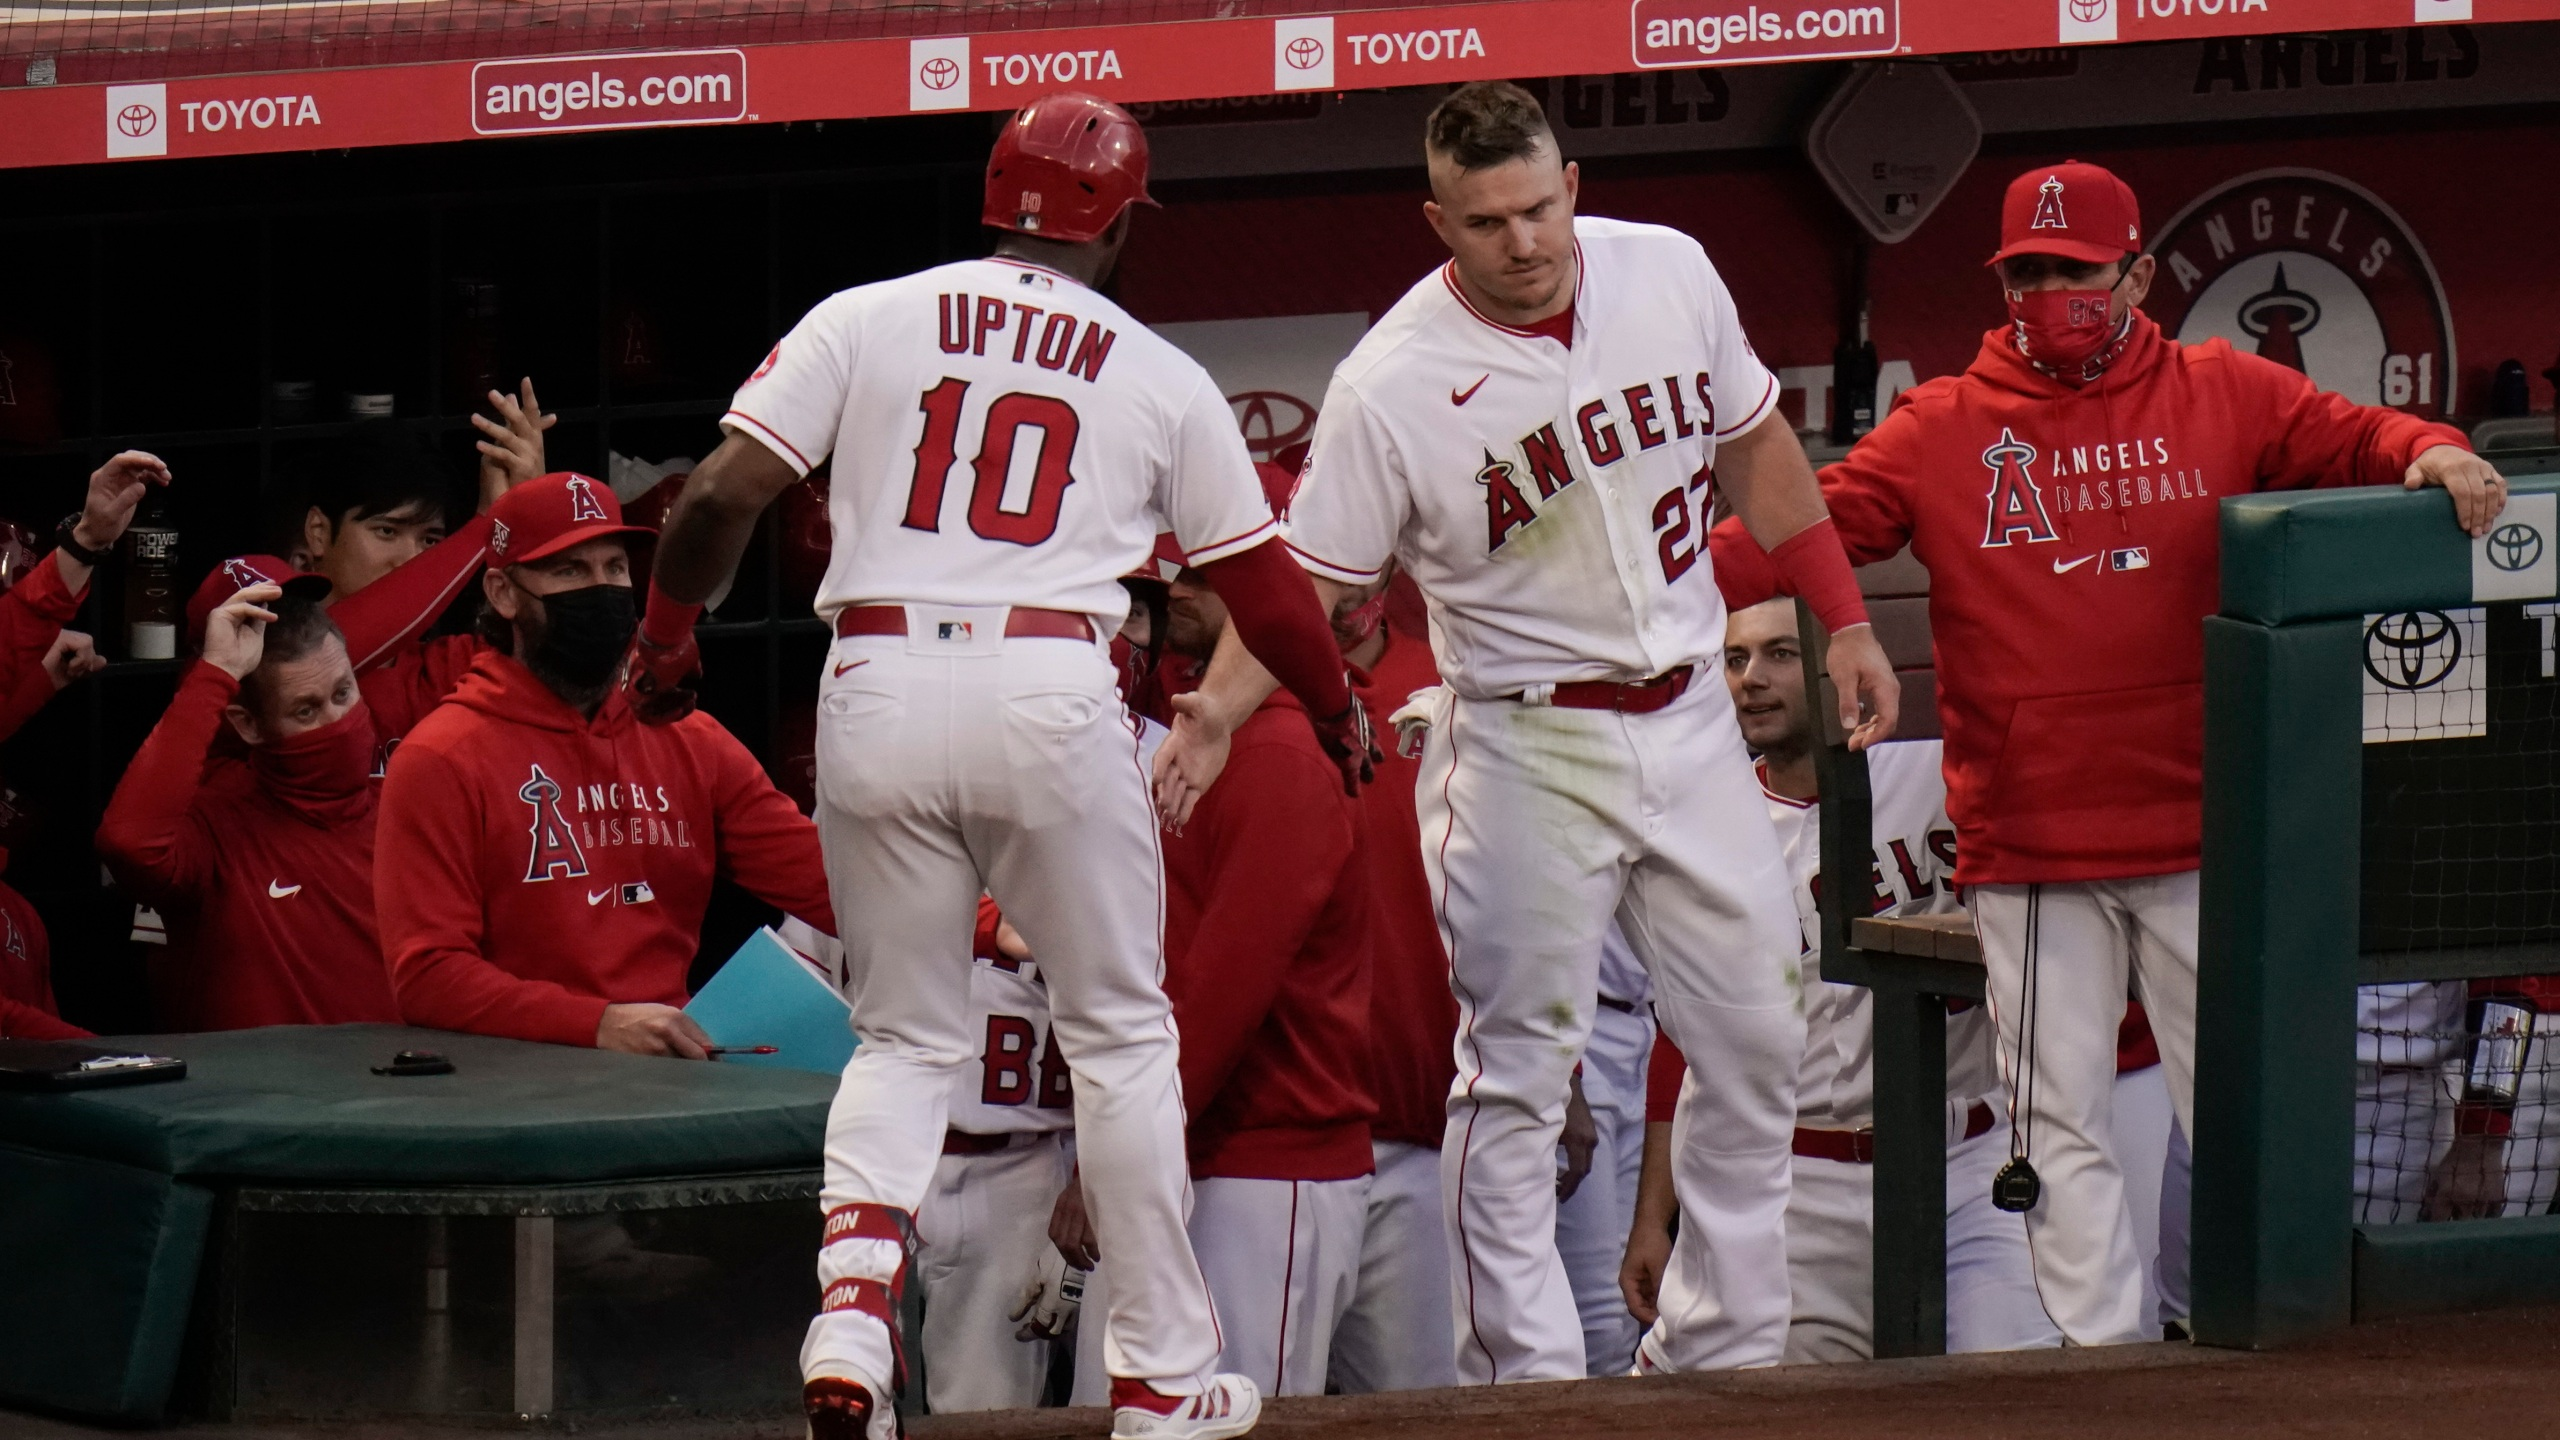 Justin Upton, Mike Trout